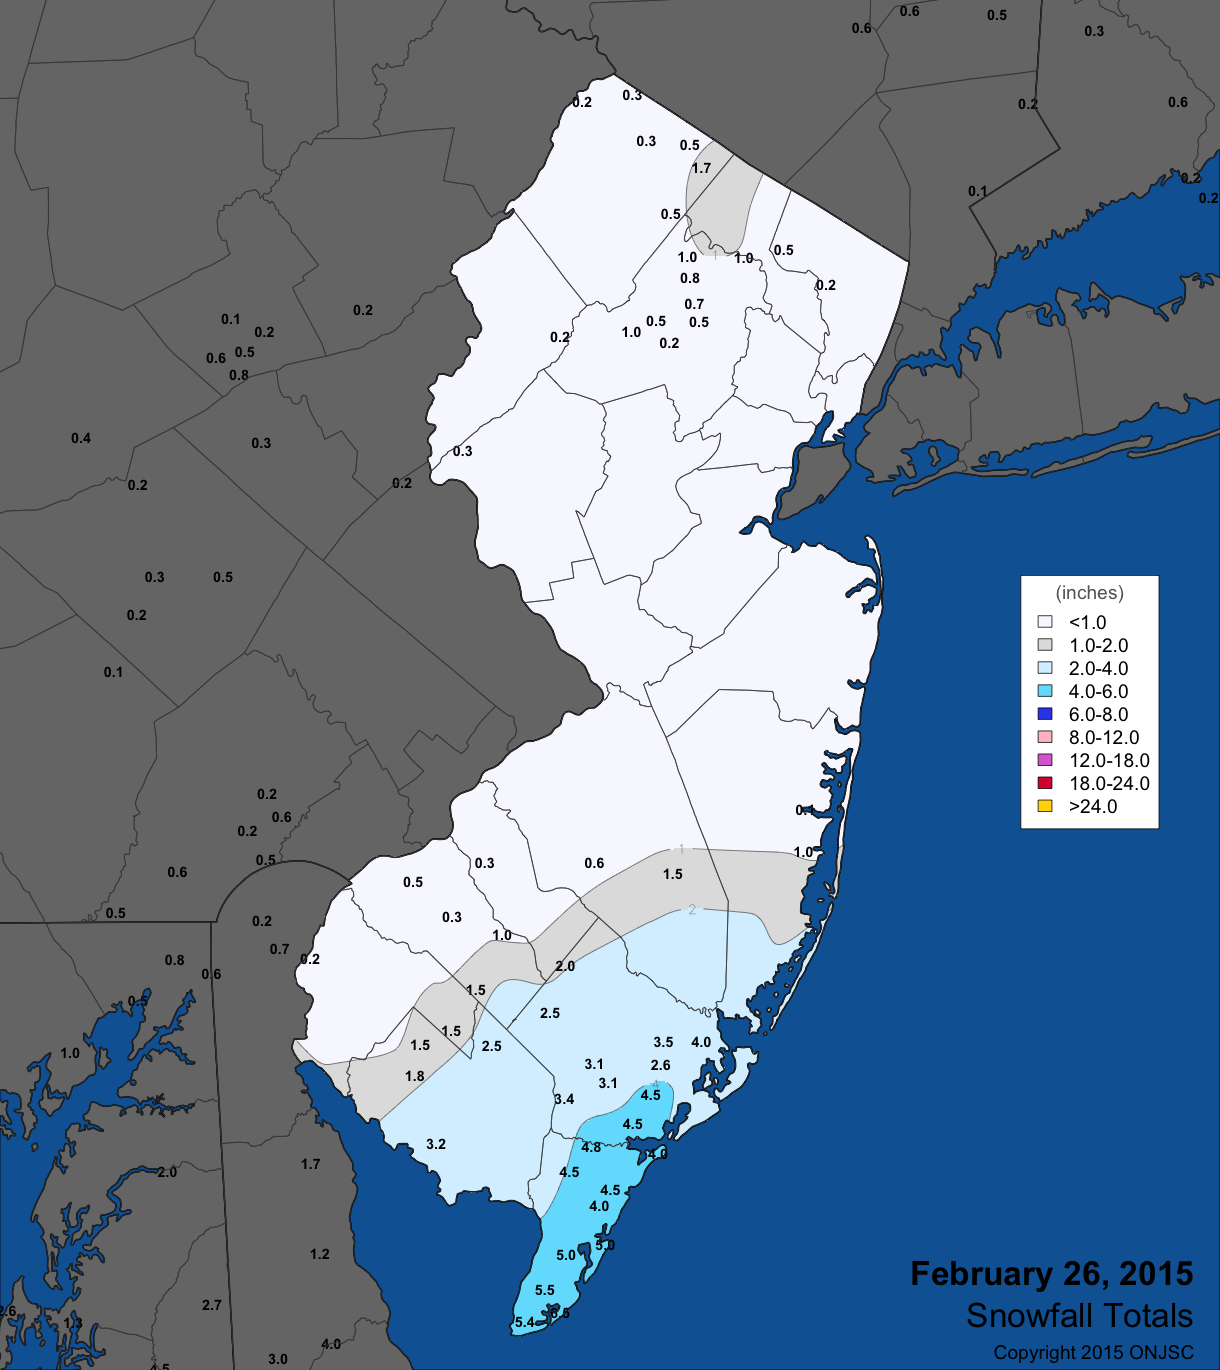 Feb 26 snow map